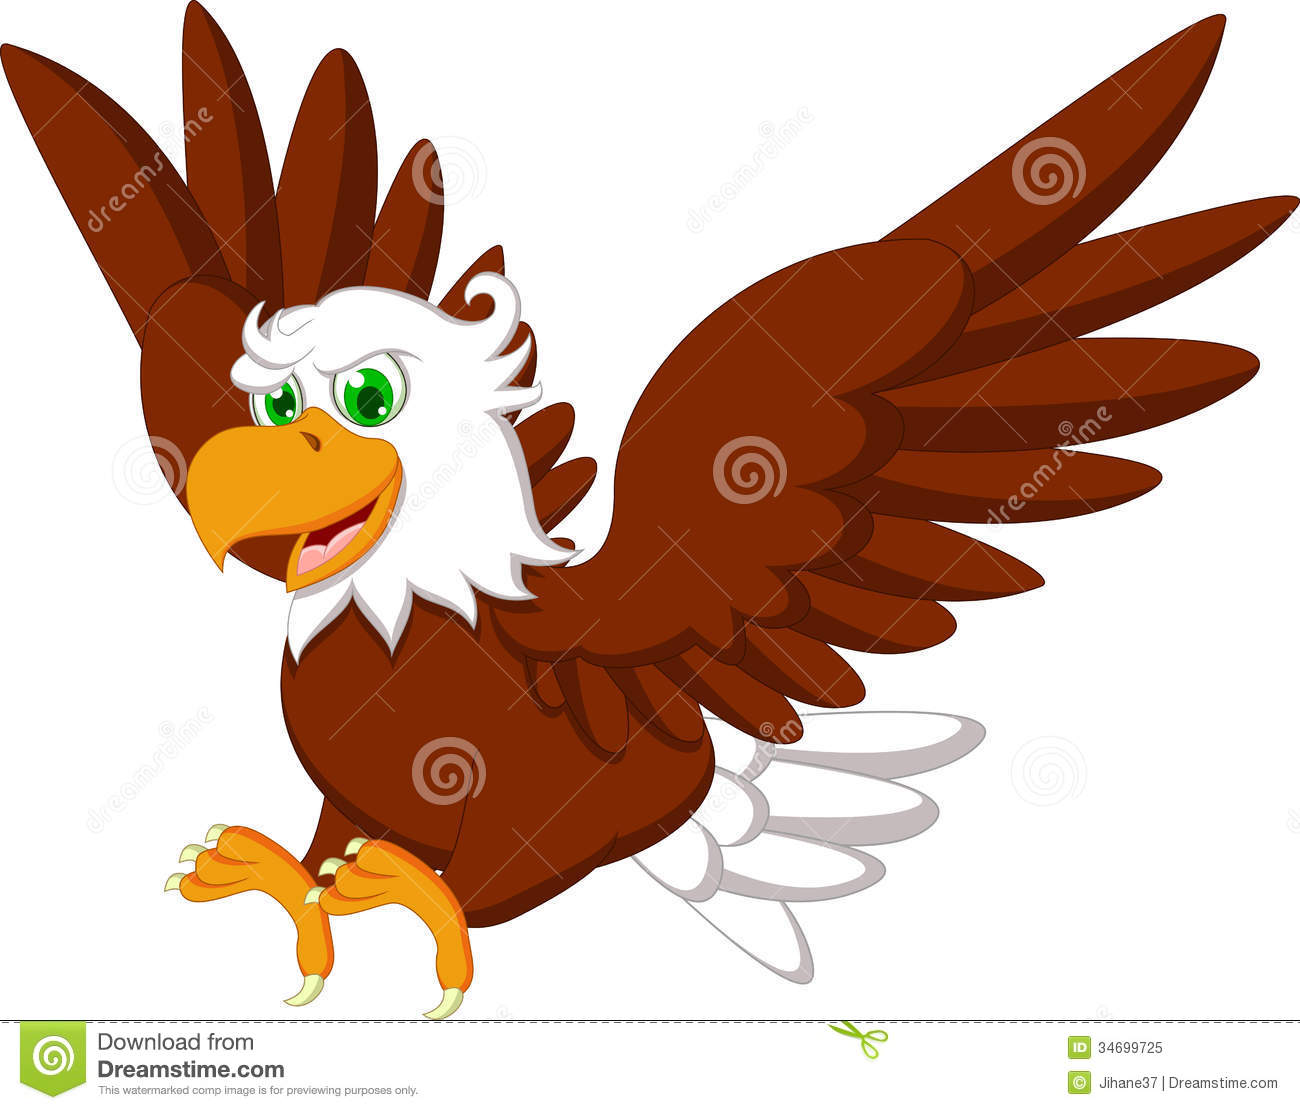 Cute Eagle Cartoon Royalty Free Stock Photo - Image: 34699725